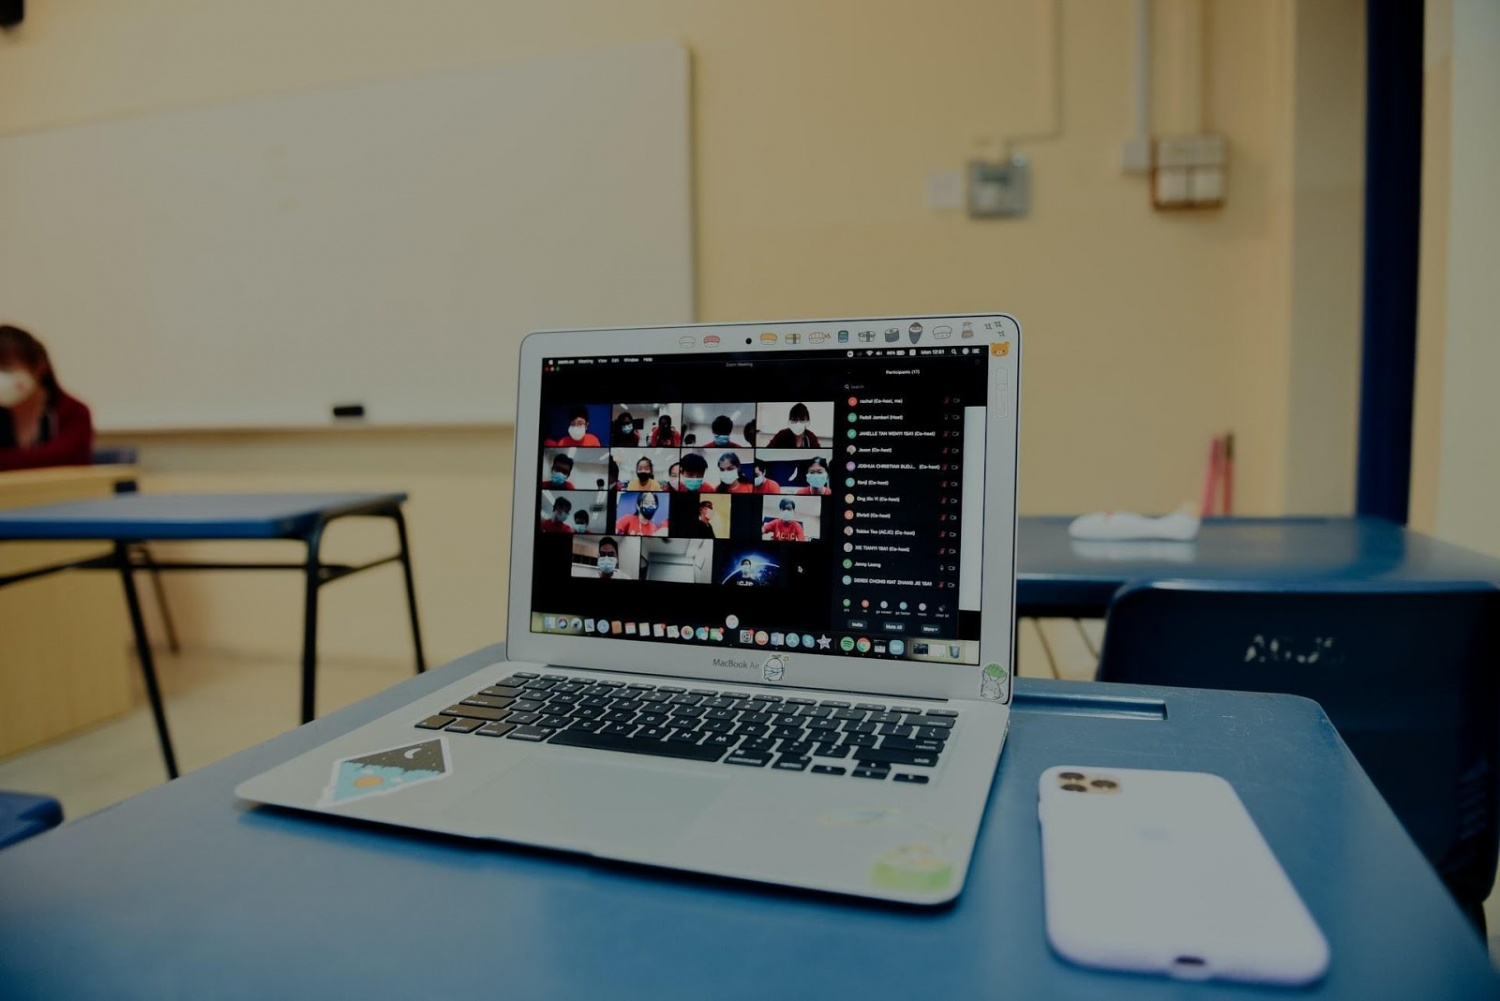 The 5 Key Factors For Successful Online Conferences